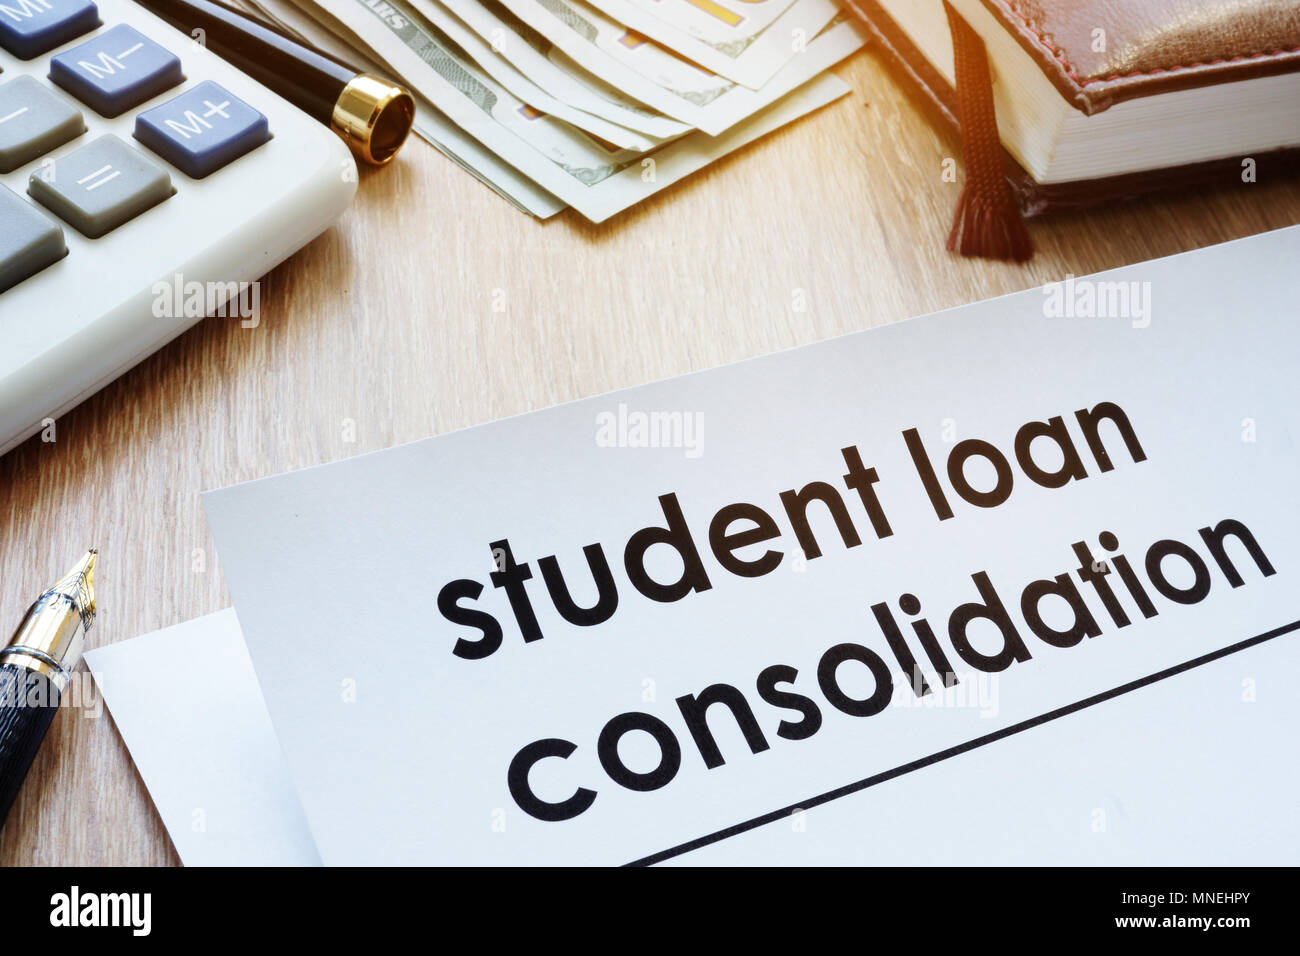 Student Loan Consolidation >> Student Loan Consolidation Form On A Desk Stock Photo 185332755 Alamy